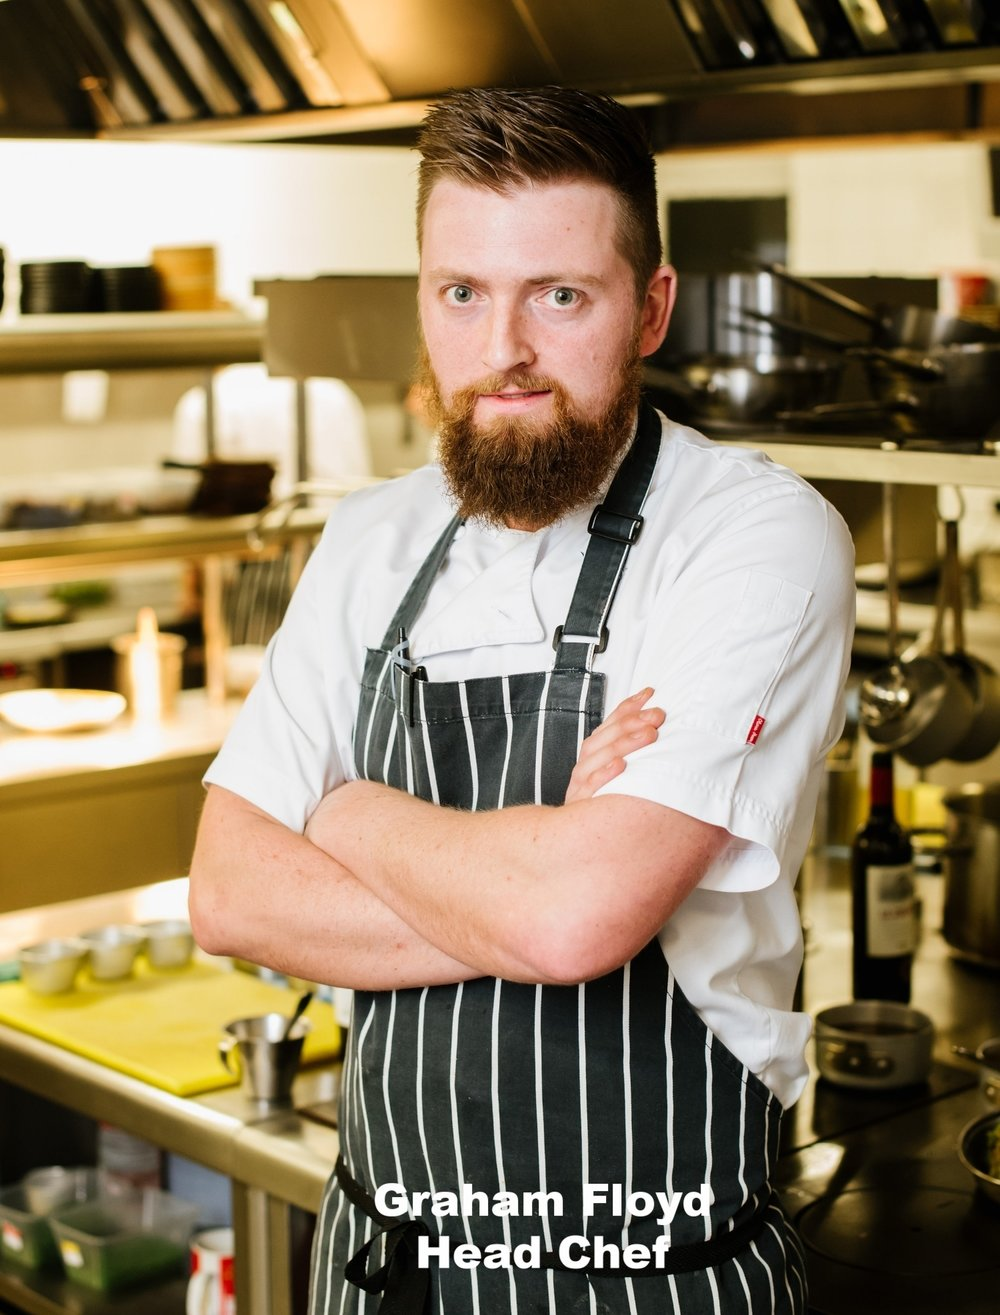 Head Chef: Graham Floyd